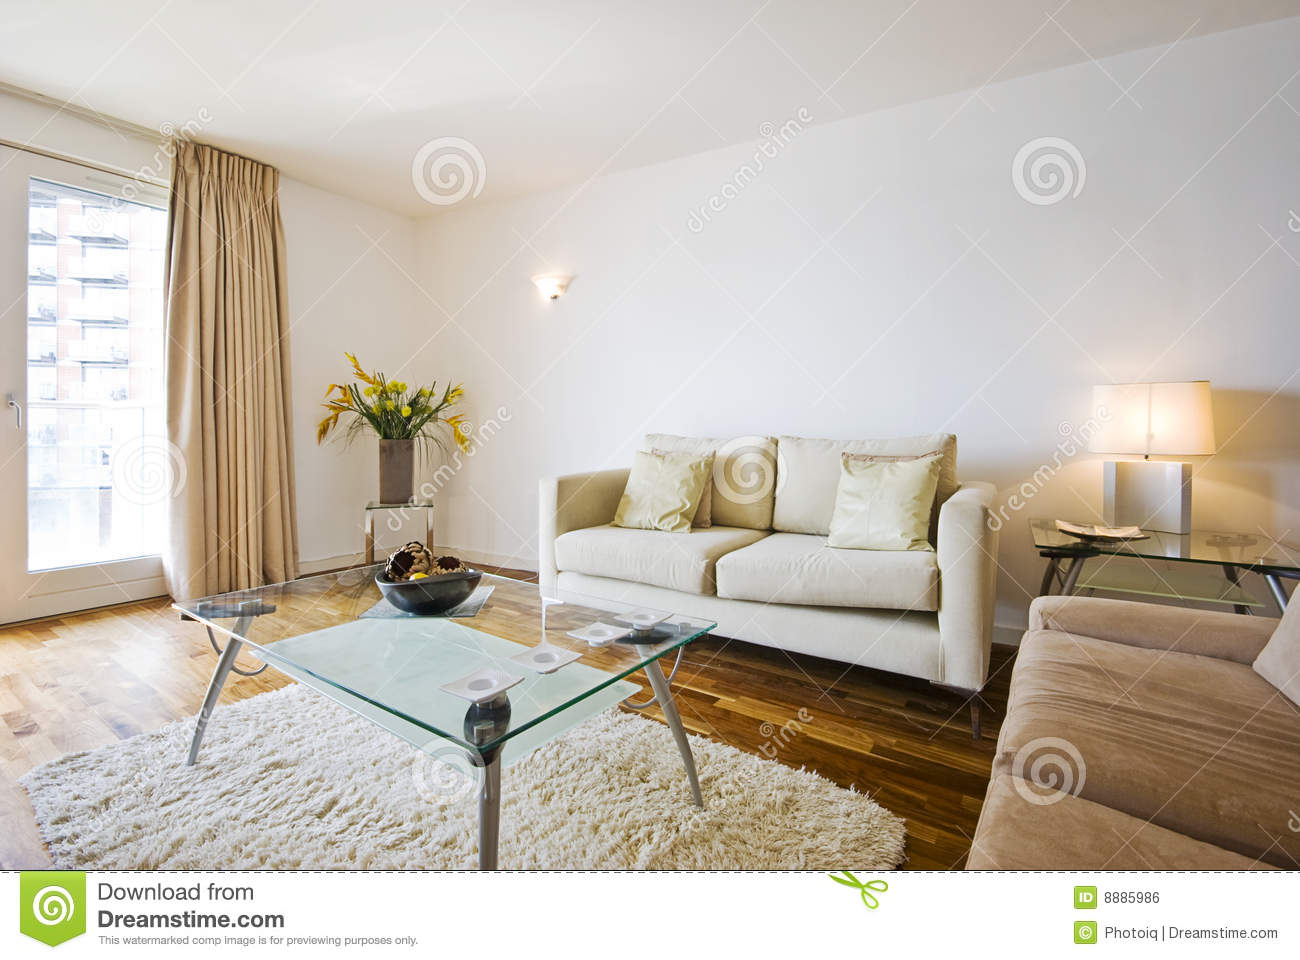 Smart living room royalty free stock image image 8885986 for Lounge sitting room